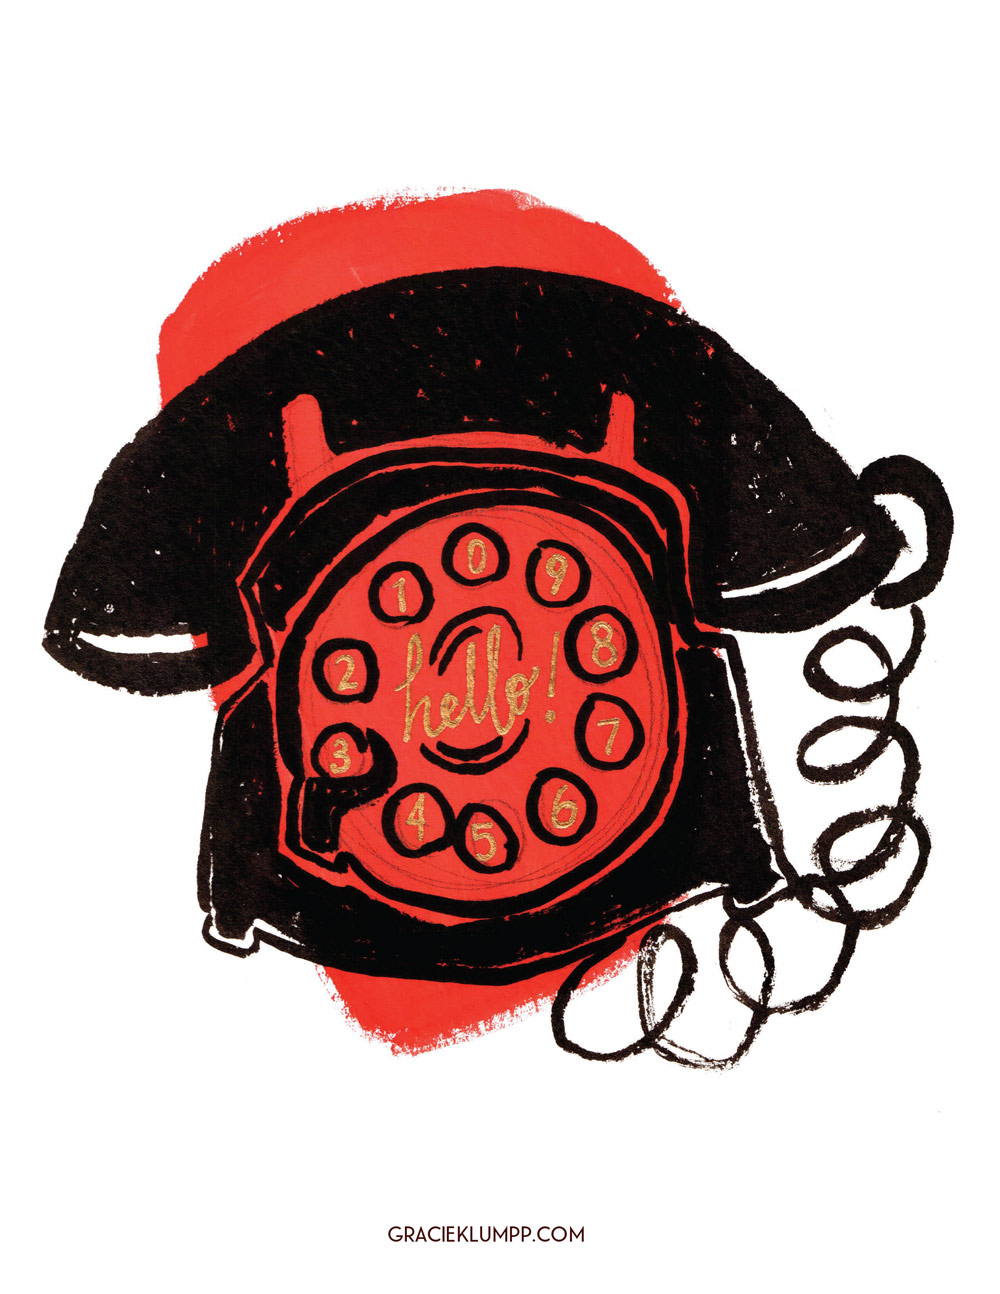 Retro Telephone Illustration